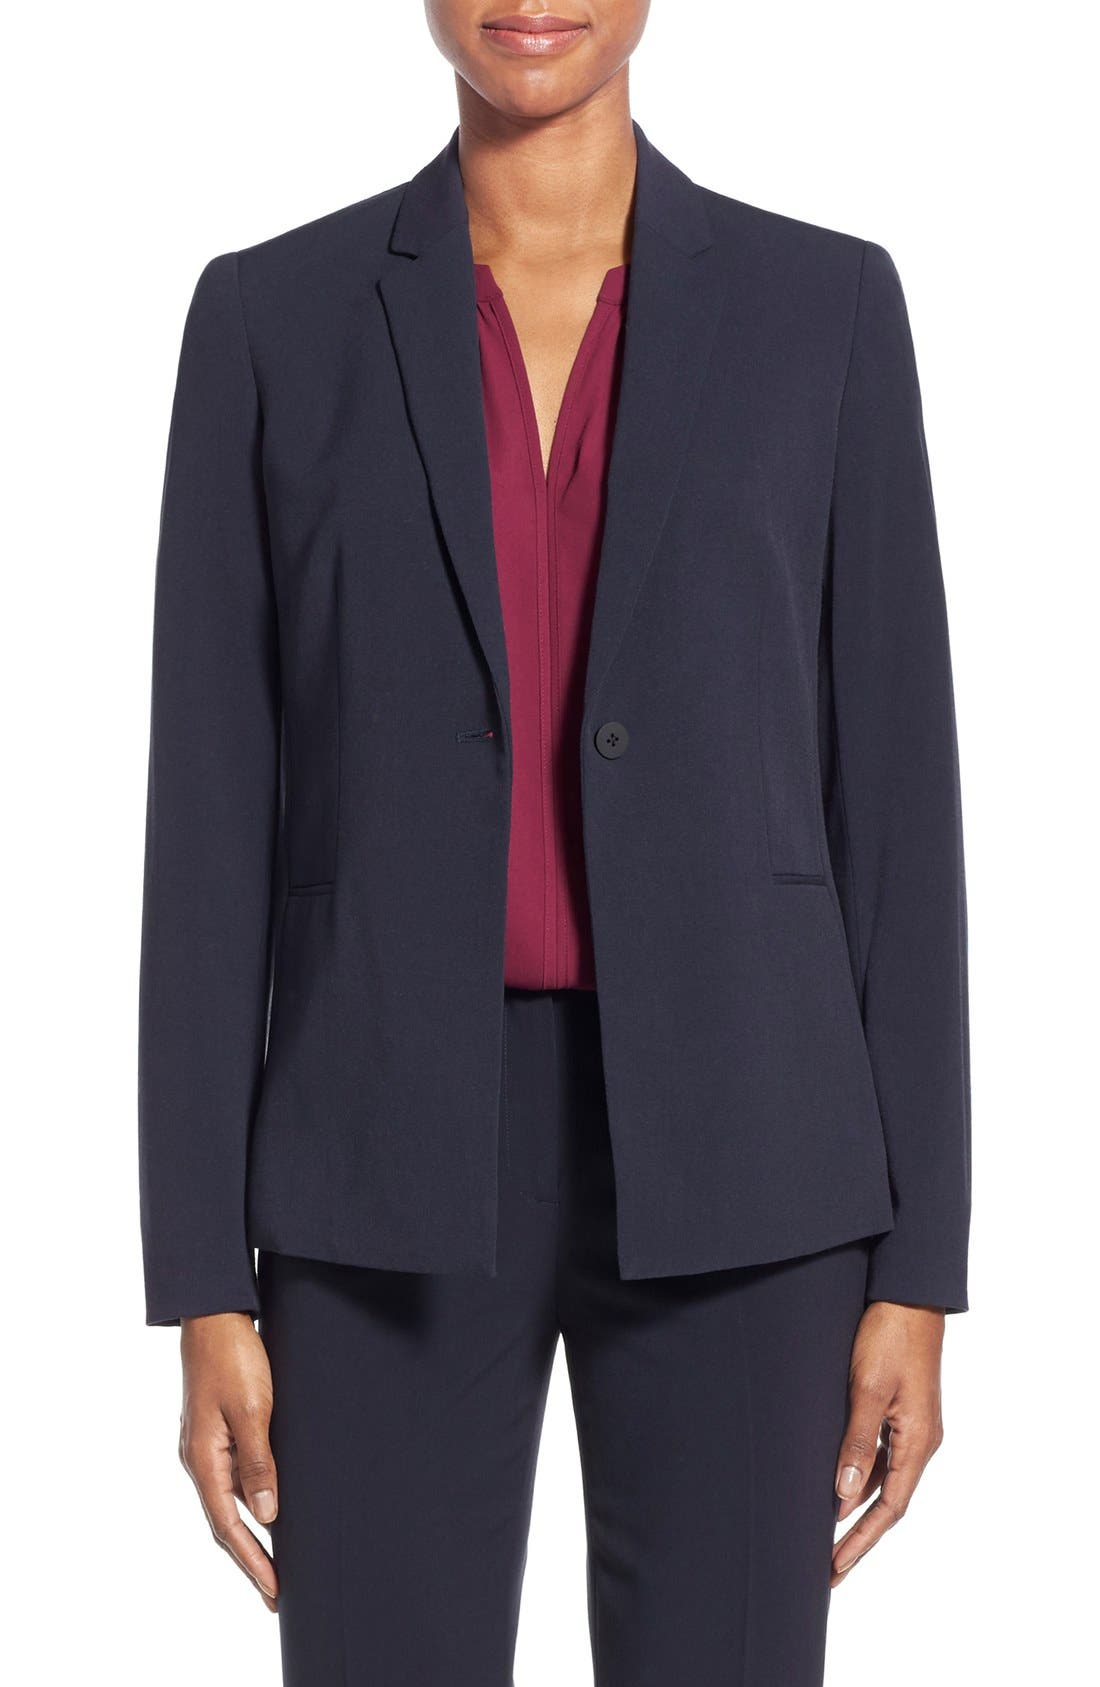 Jolie Stretch Woven Suit Jacket,                             Main thumbnail 1, color,                             410